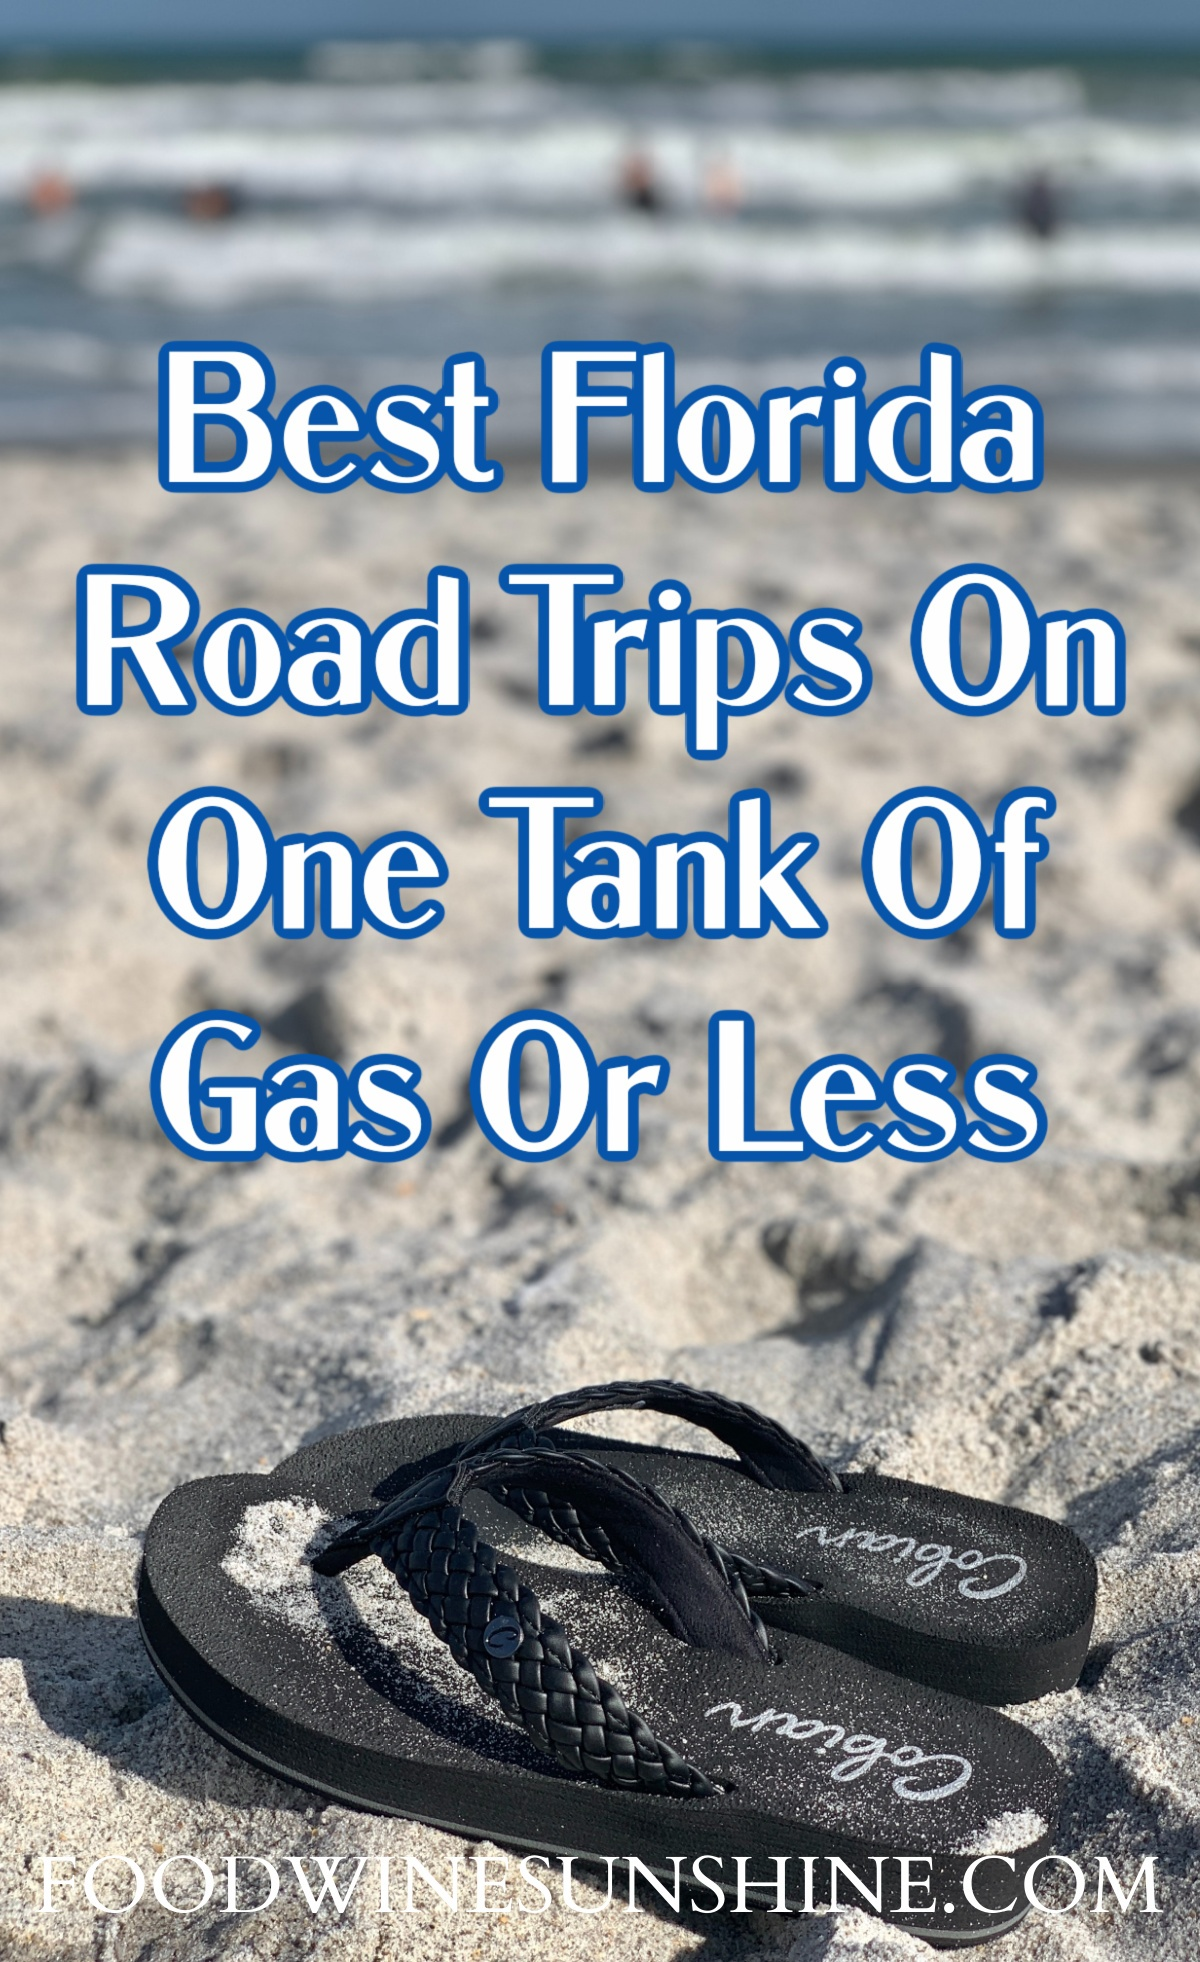 Best Florida Road Trips On One Tank Of Gas